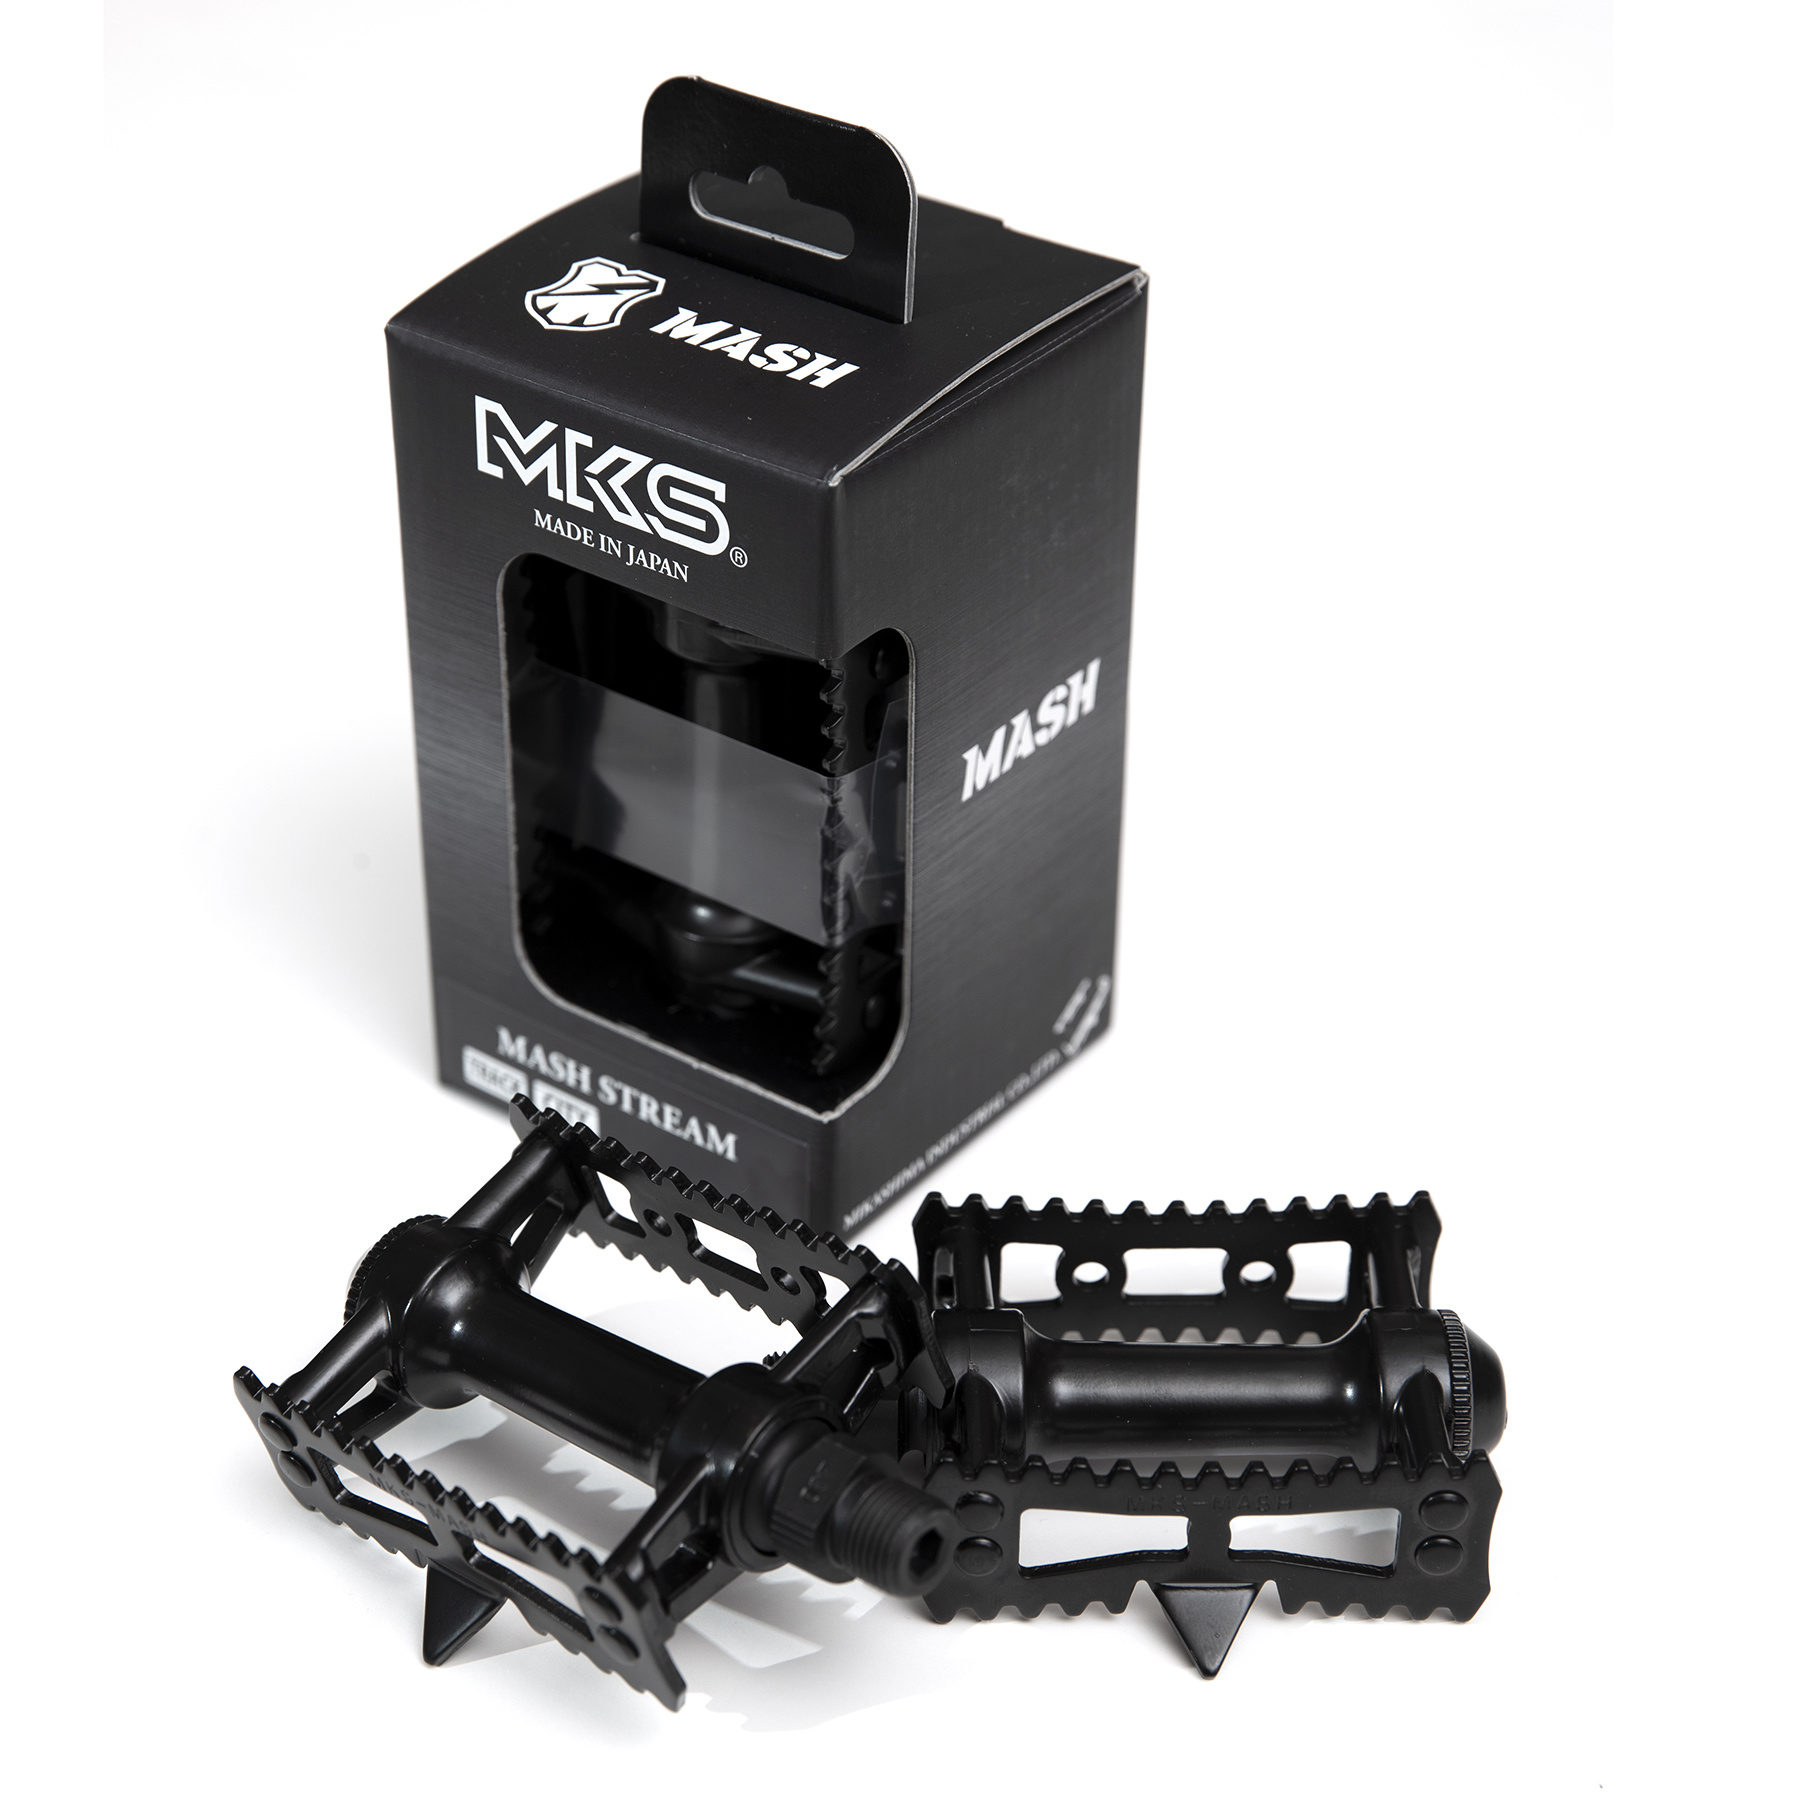 MASH MKS All Black Sylvan Stream Pedals